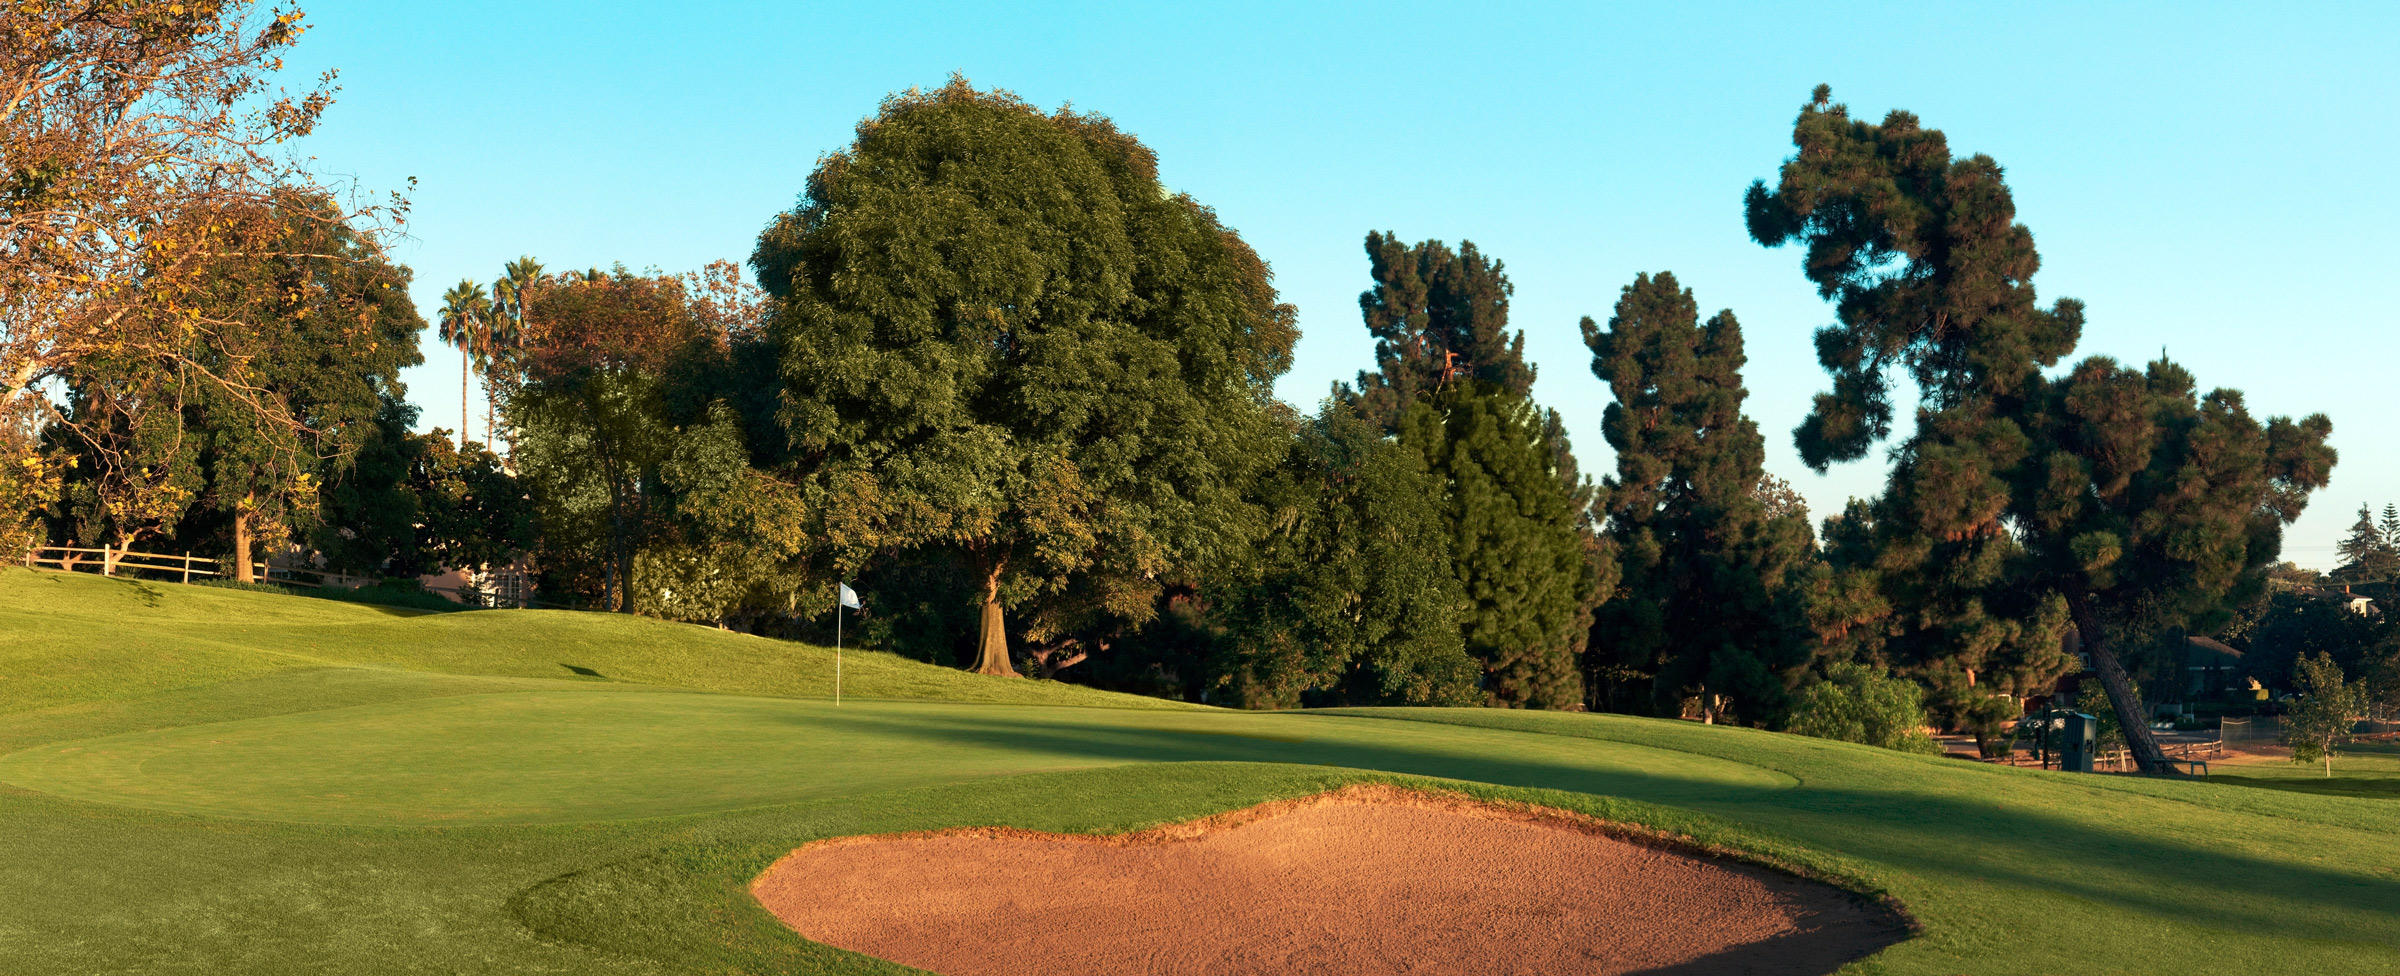 Recreation Park Golf Course Image Thumbnail